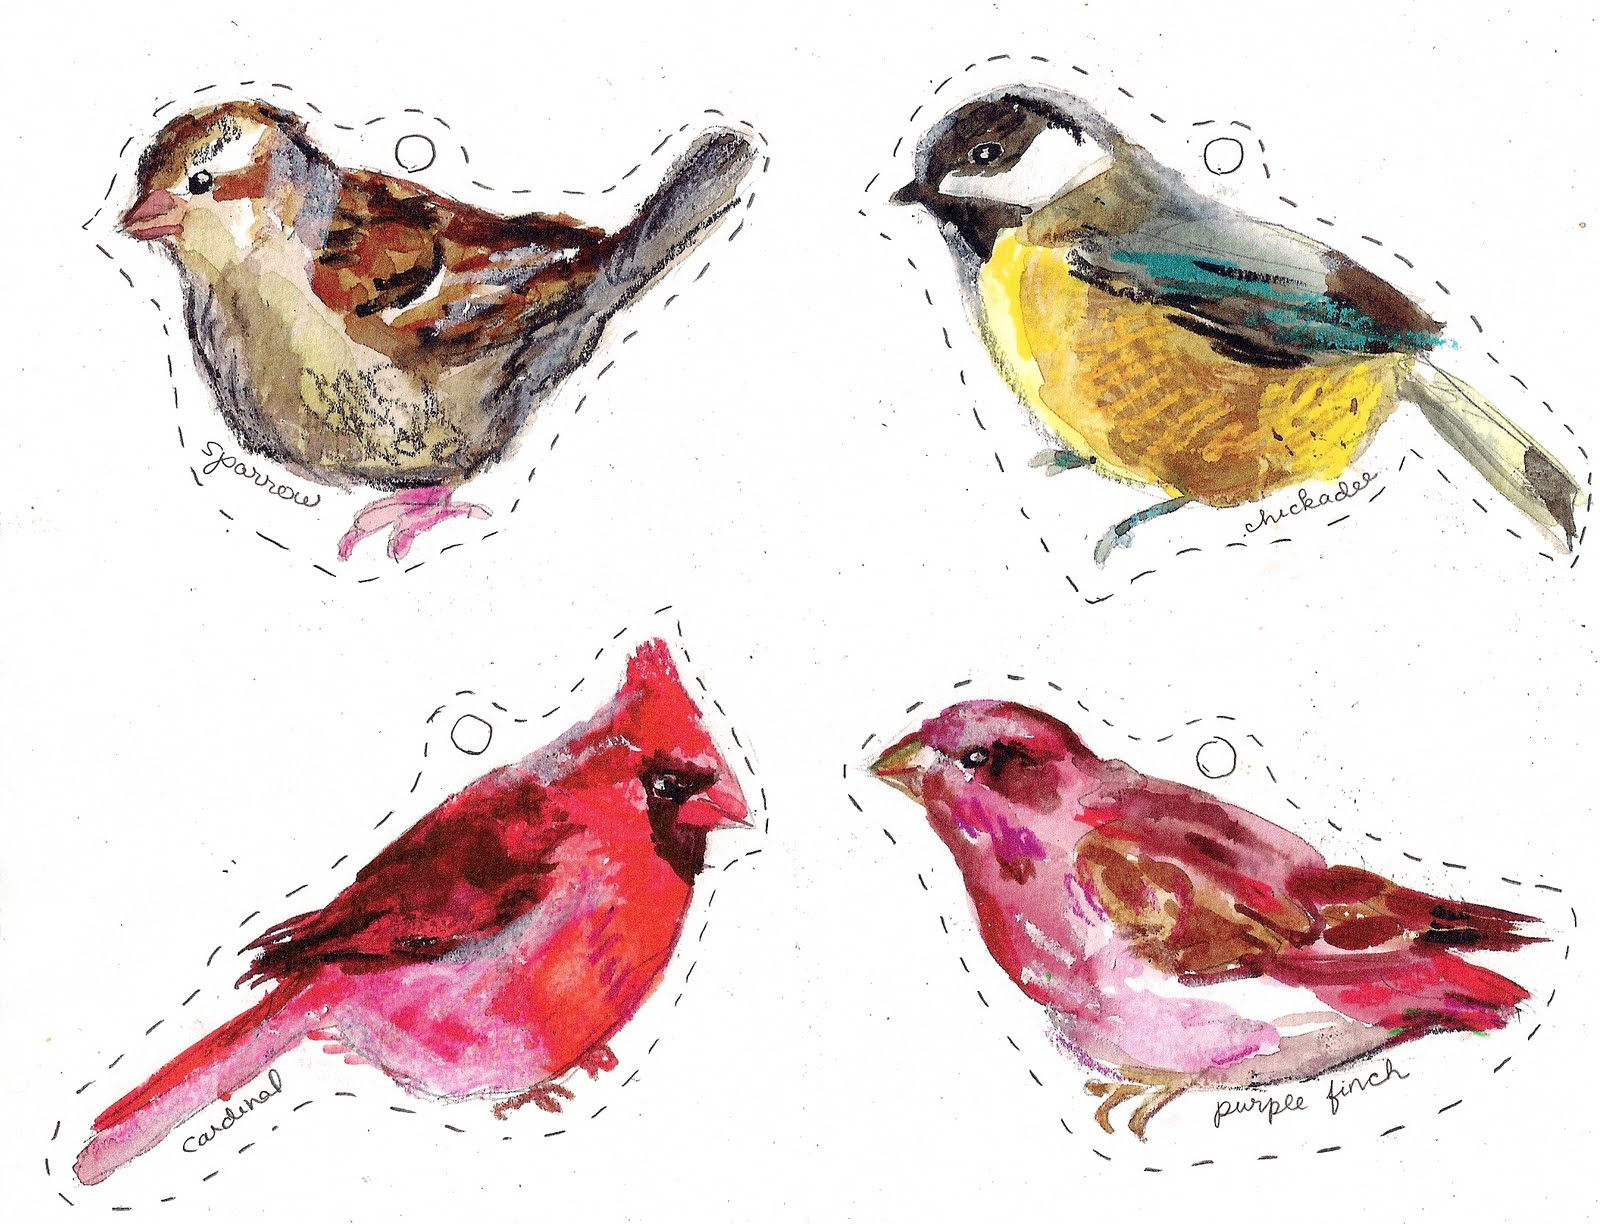 Printable Pics Of Birds With Winter Birds Free Printables Making It - Free Printable Images Of Birds